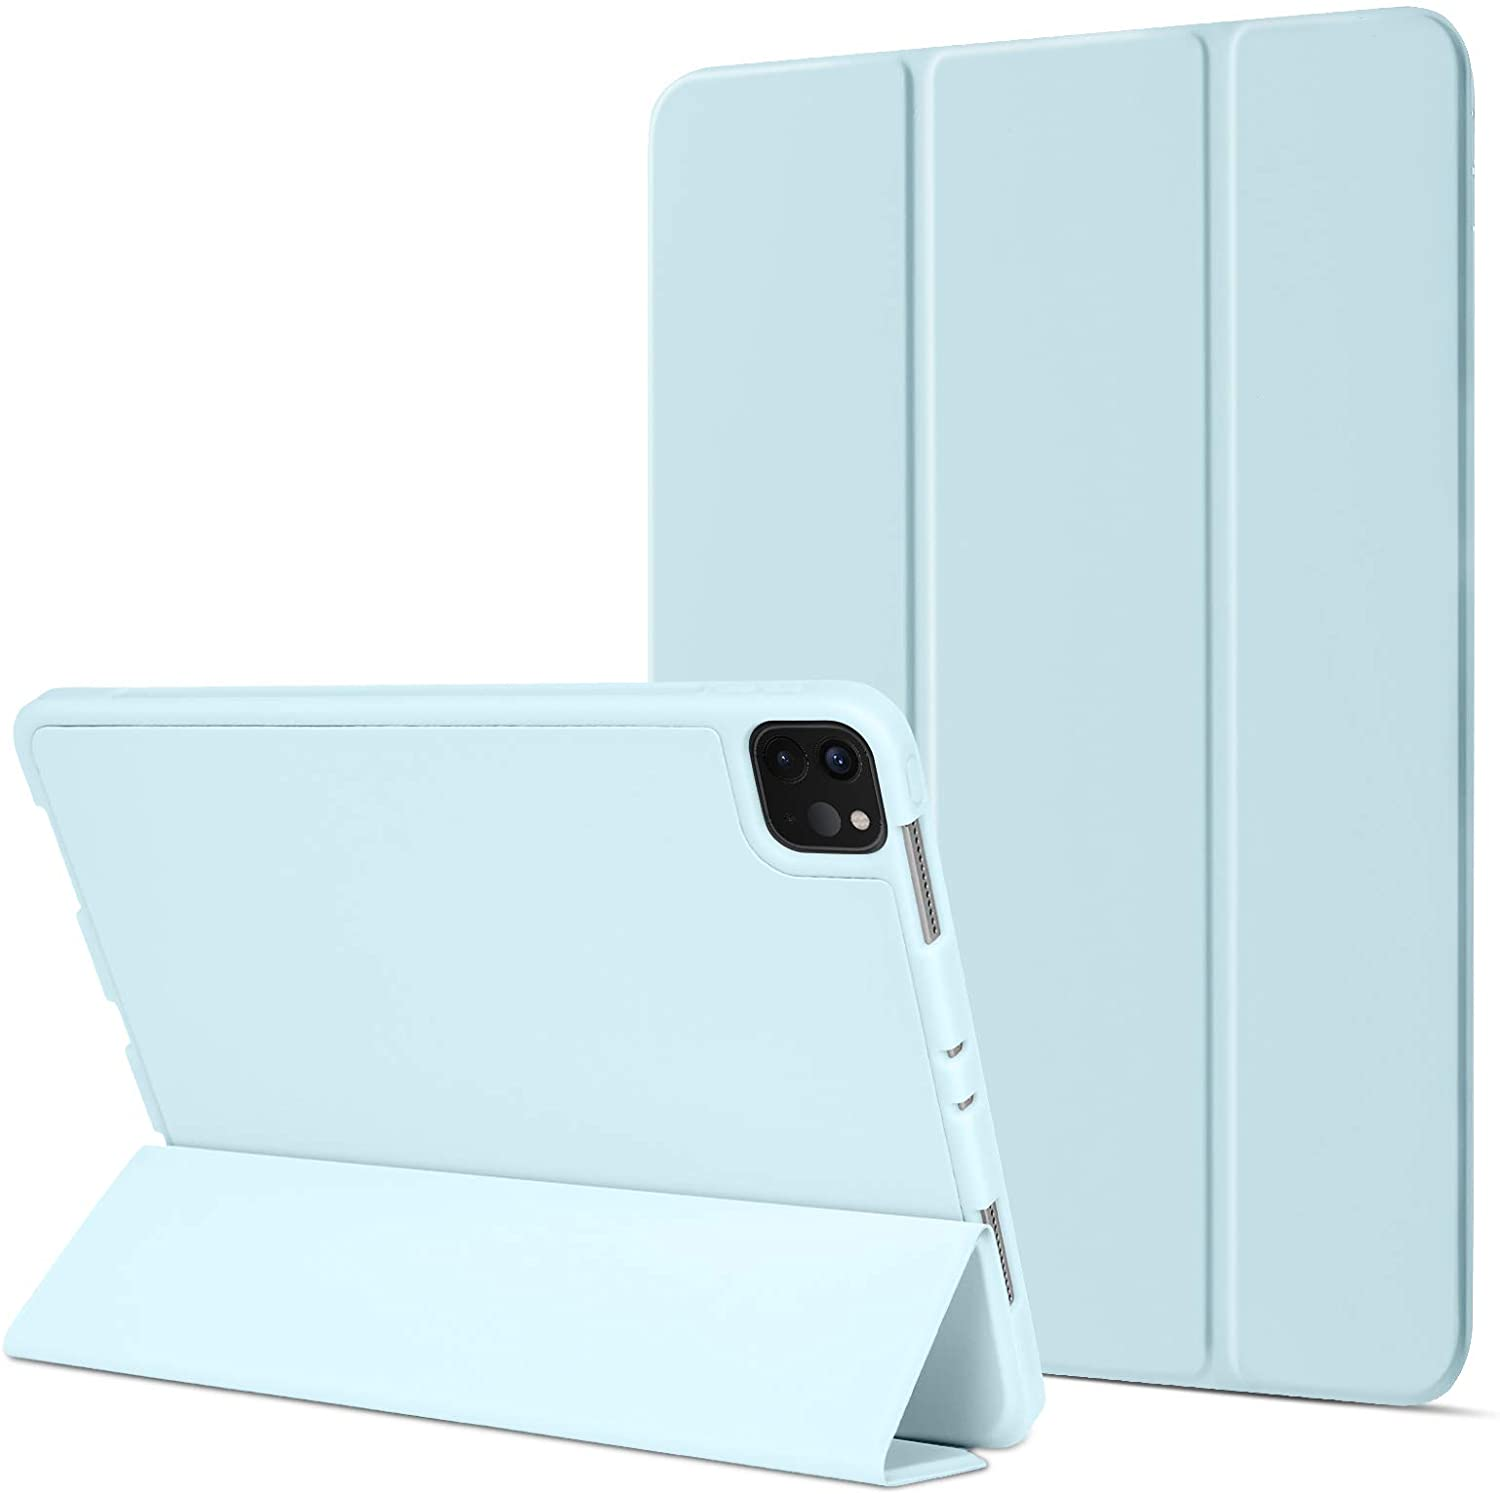 BENTOBEN iPad Pro 11 Case 2020 with Pencil Holder (2nd Generation), Slim Stand Auto Wake/Sleep Flexible TPU Back with Rubberized Tablet Cover Case for iPad Pro 11 2020/2018 - Light Blue